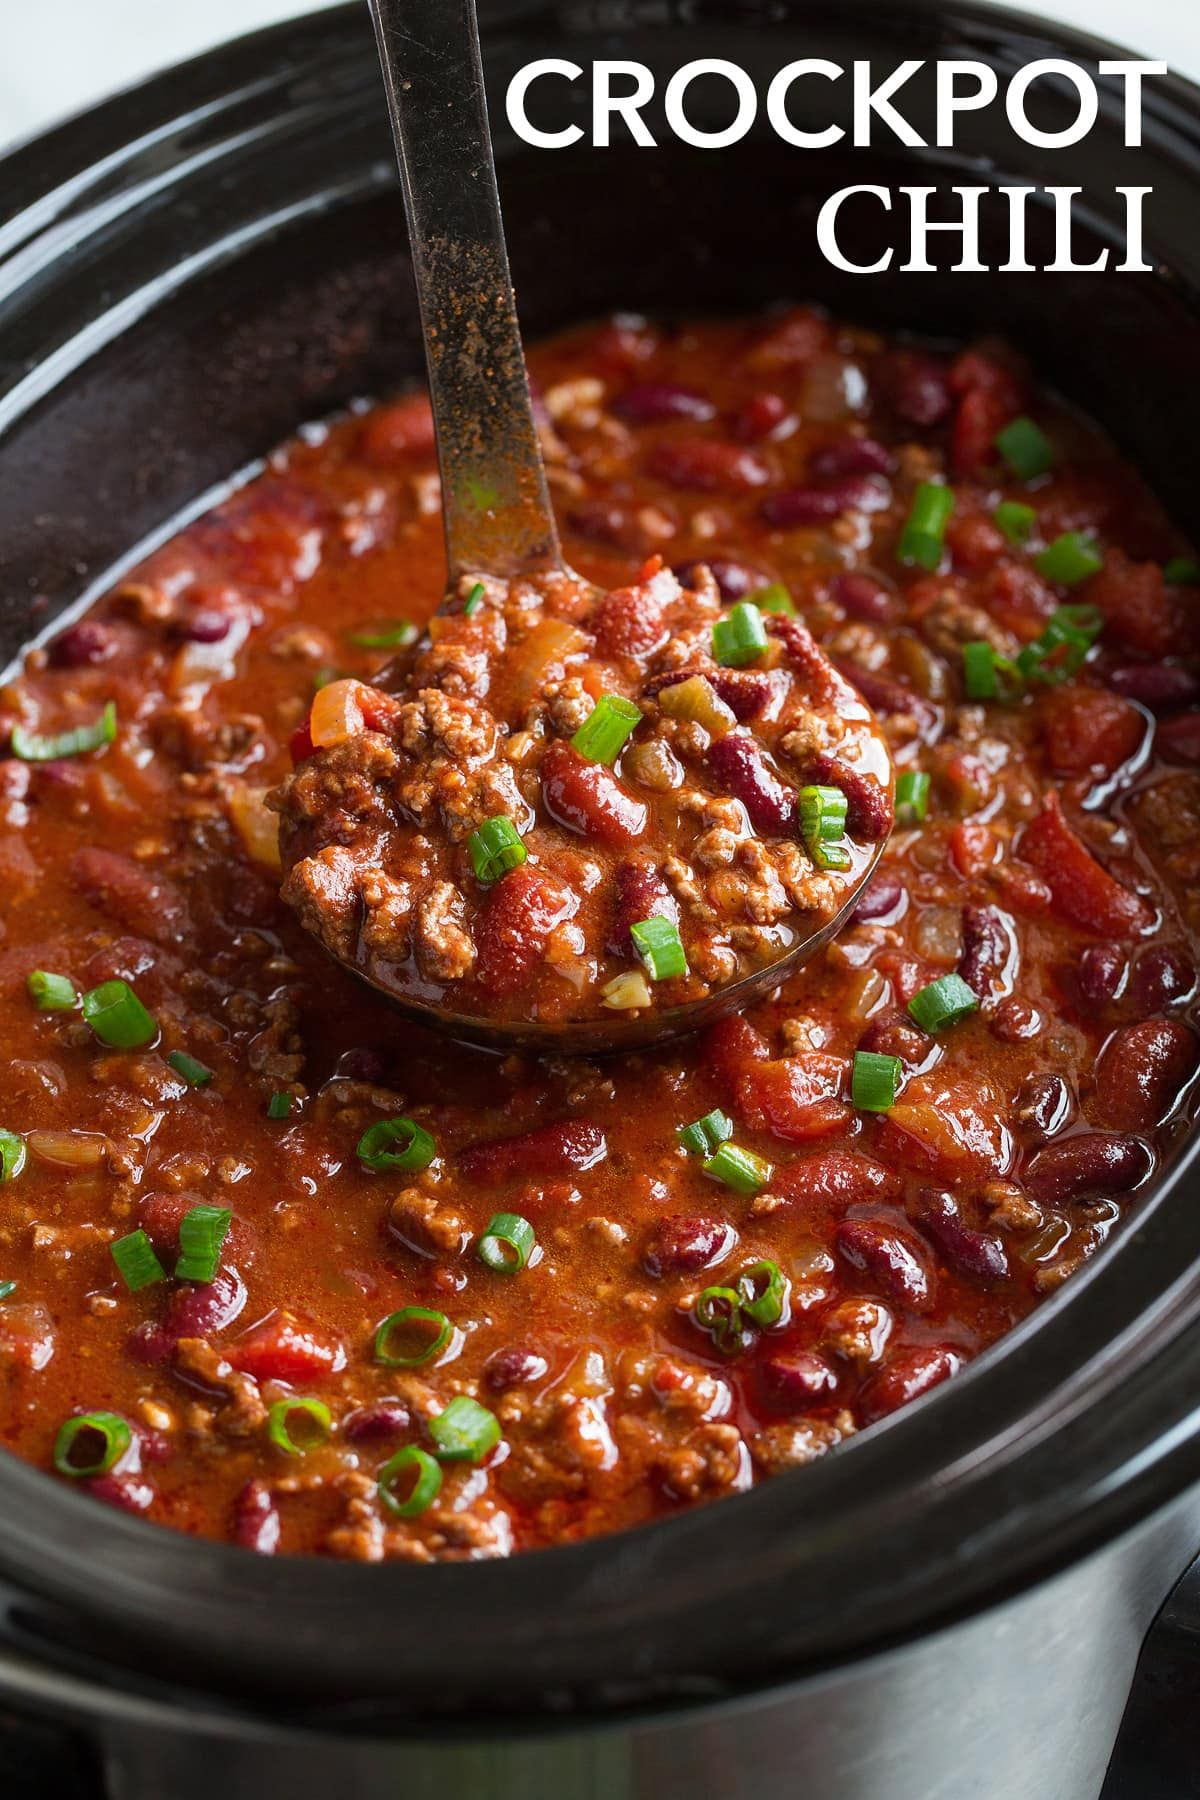 Slow Cooker Chili Best Ever One Of My All Time Most Popular Recipes And For Good Reason Chilli Recipe Slow Cooker Slow Cooker Chili Slow Cooker Chili Recipe